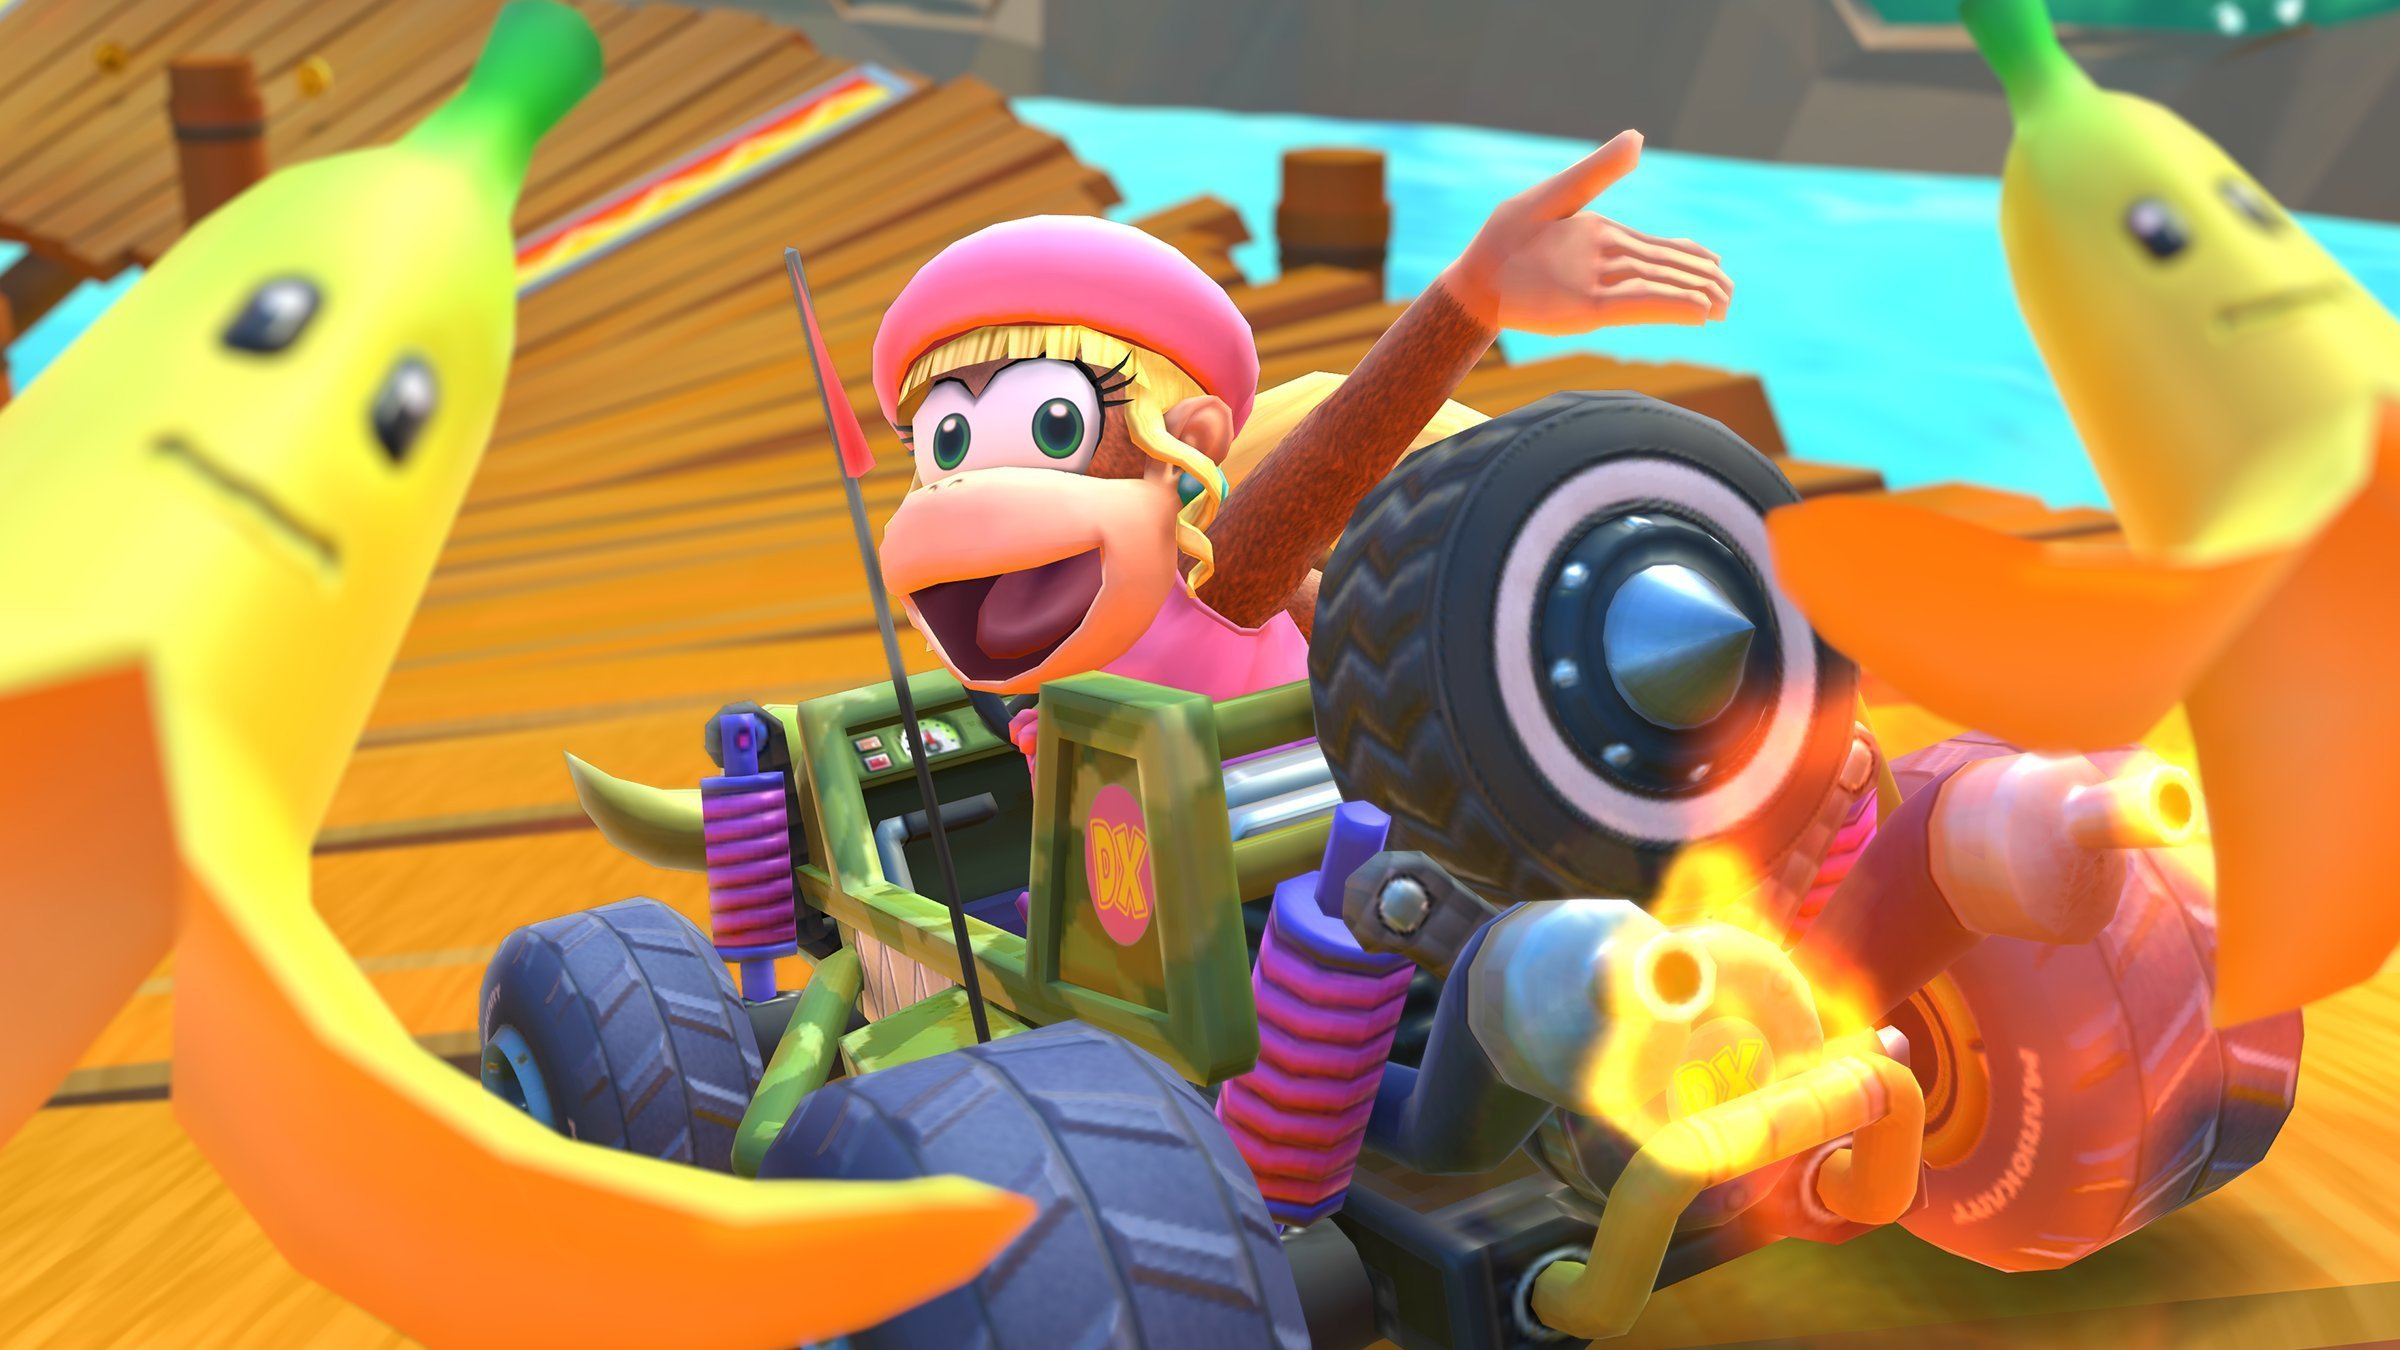 Mario Kart will land on iOS in the next 12 months